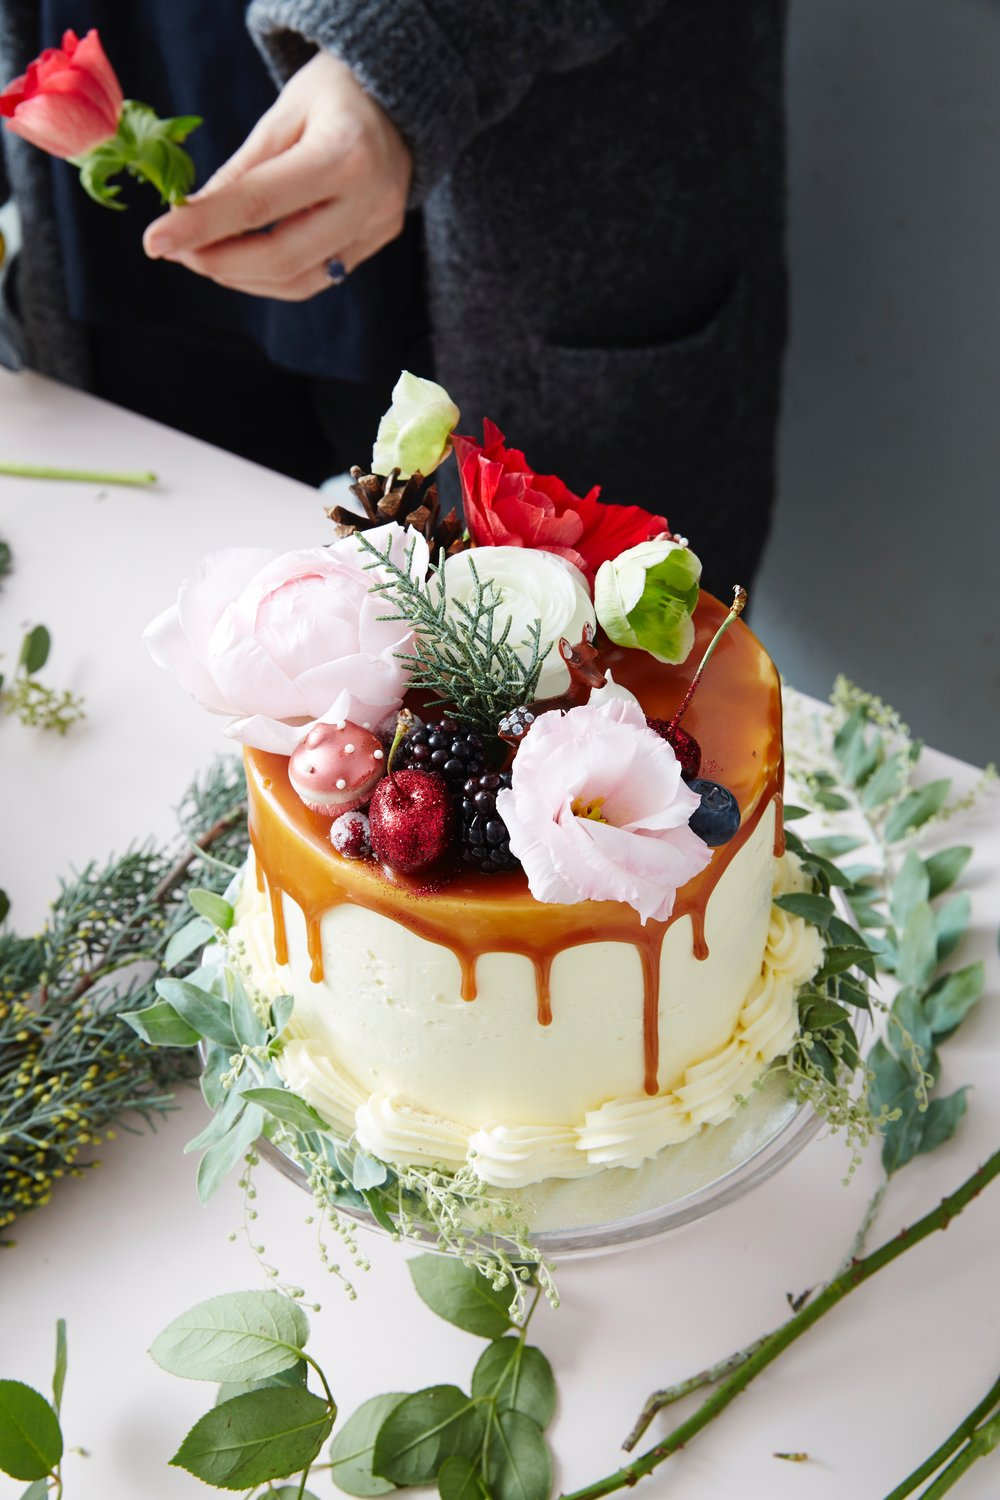 festive decorating cake